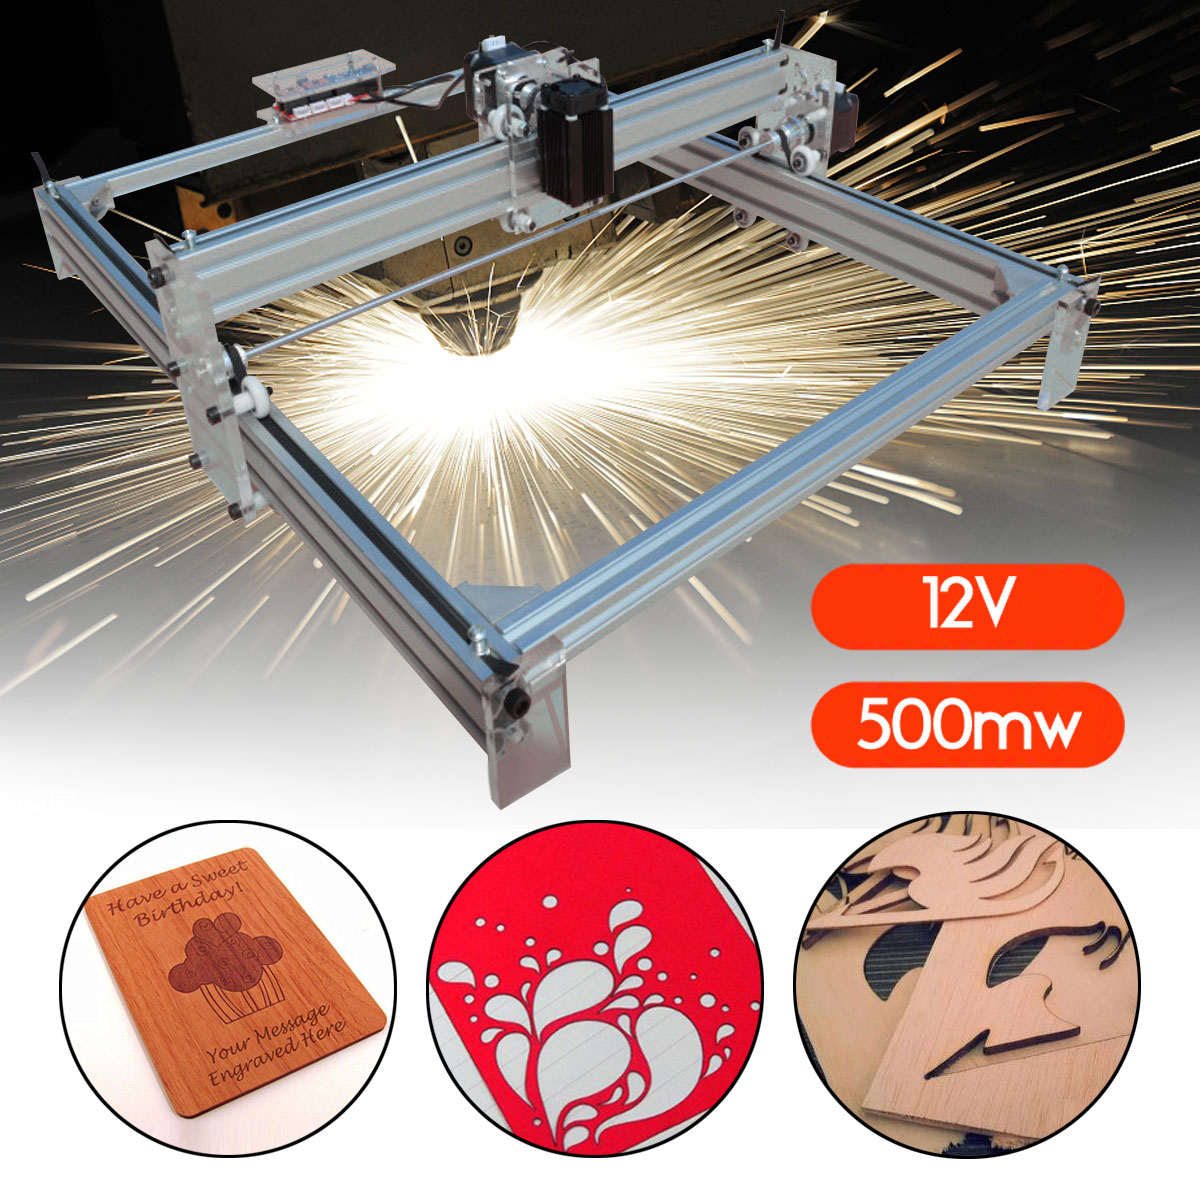 40X50CM Mini DIY Desktop Blue Laser Engraving Engraver Machine 500mW Wood Router/Cutter/Printer/Power Adjustable + Laser Goggles 1000mw diy desktop mini laser engraver engraving machine laser cutter etcher 50x65cm adjustable laser power